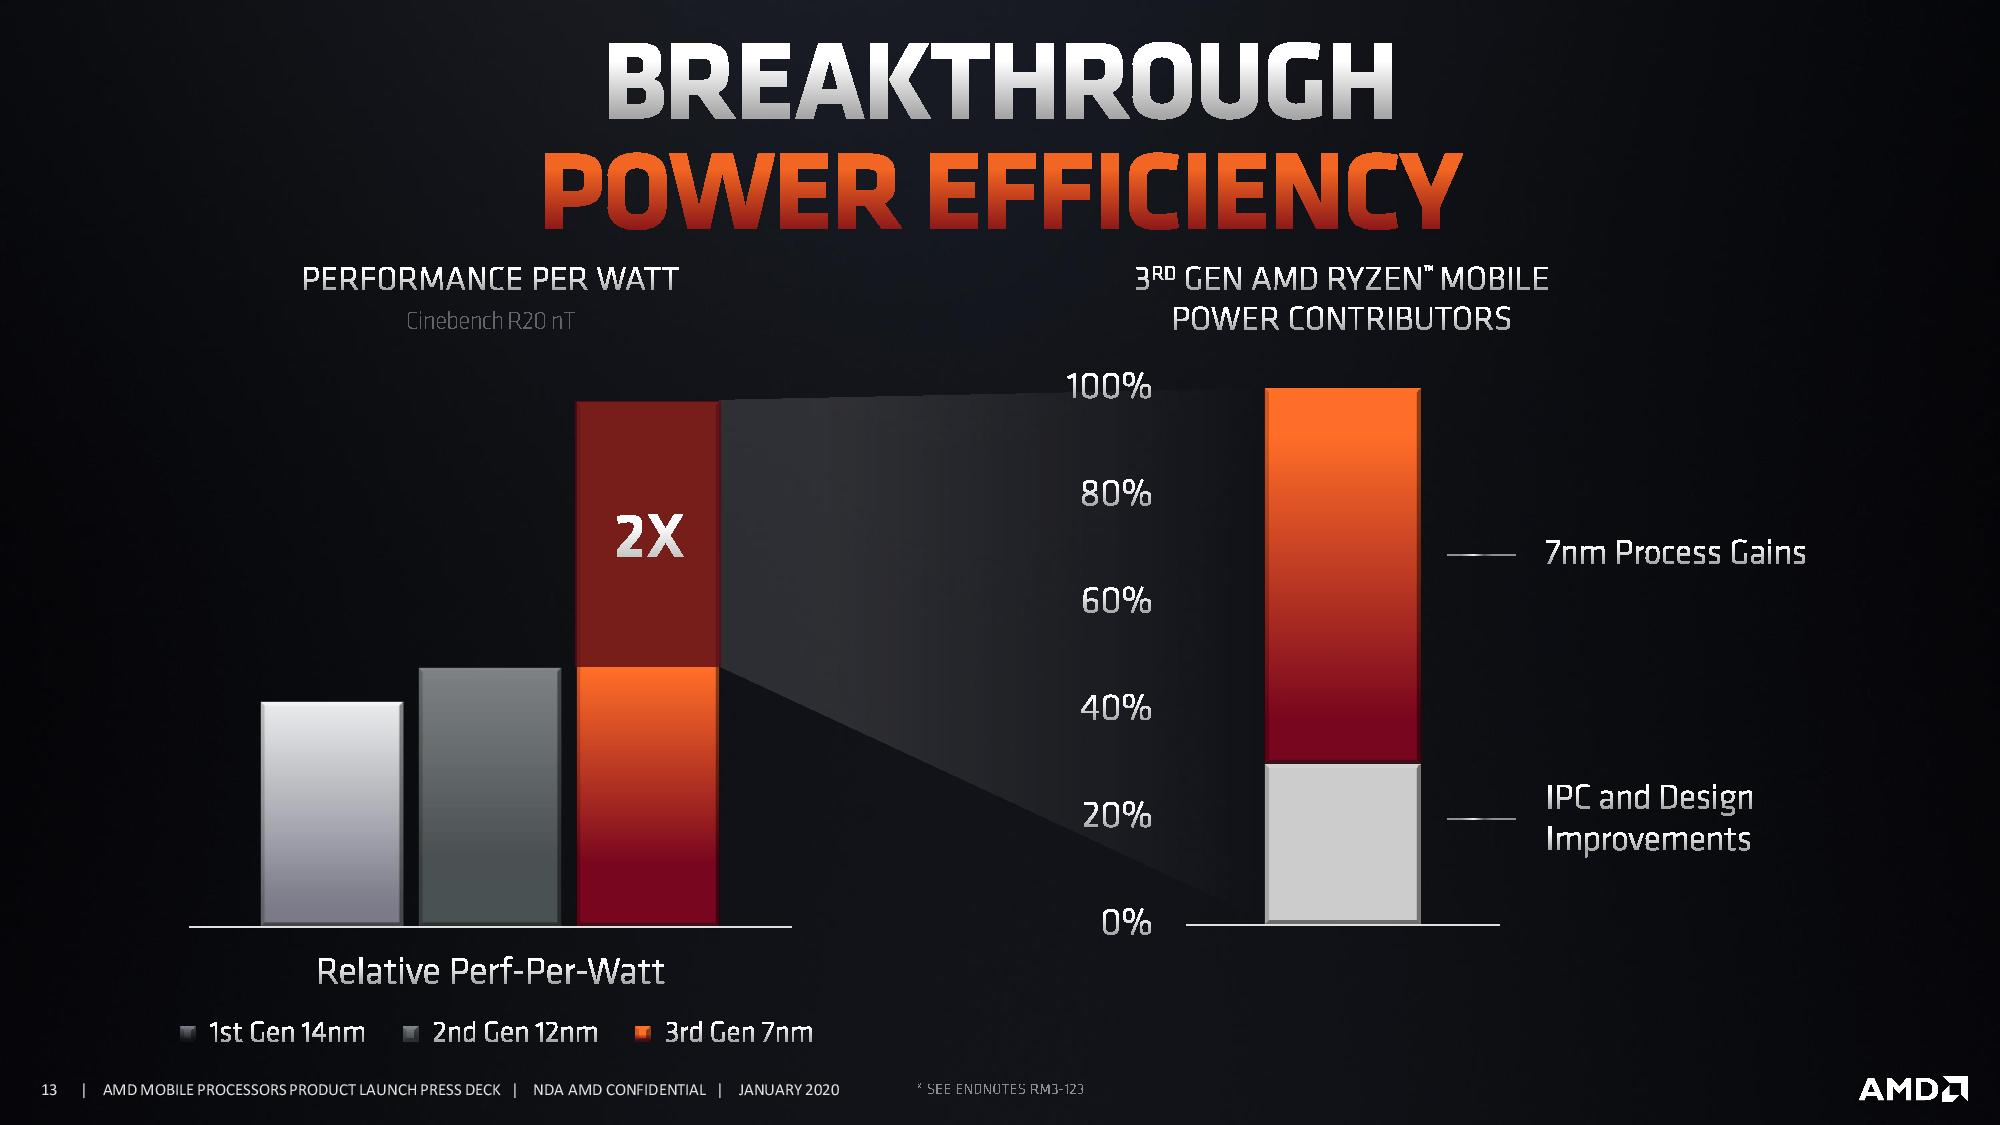 AMD Ryzen 4000 Mobile APUs: 7nm, 8-core on both 15W and 45W, Coming Q1